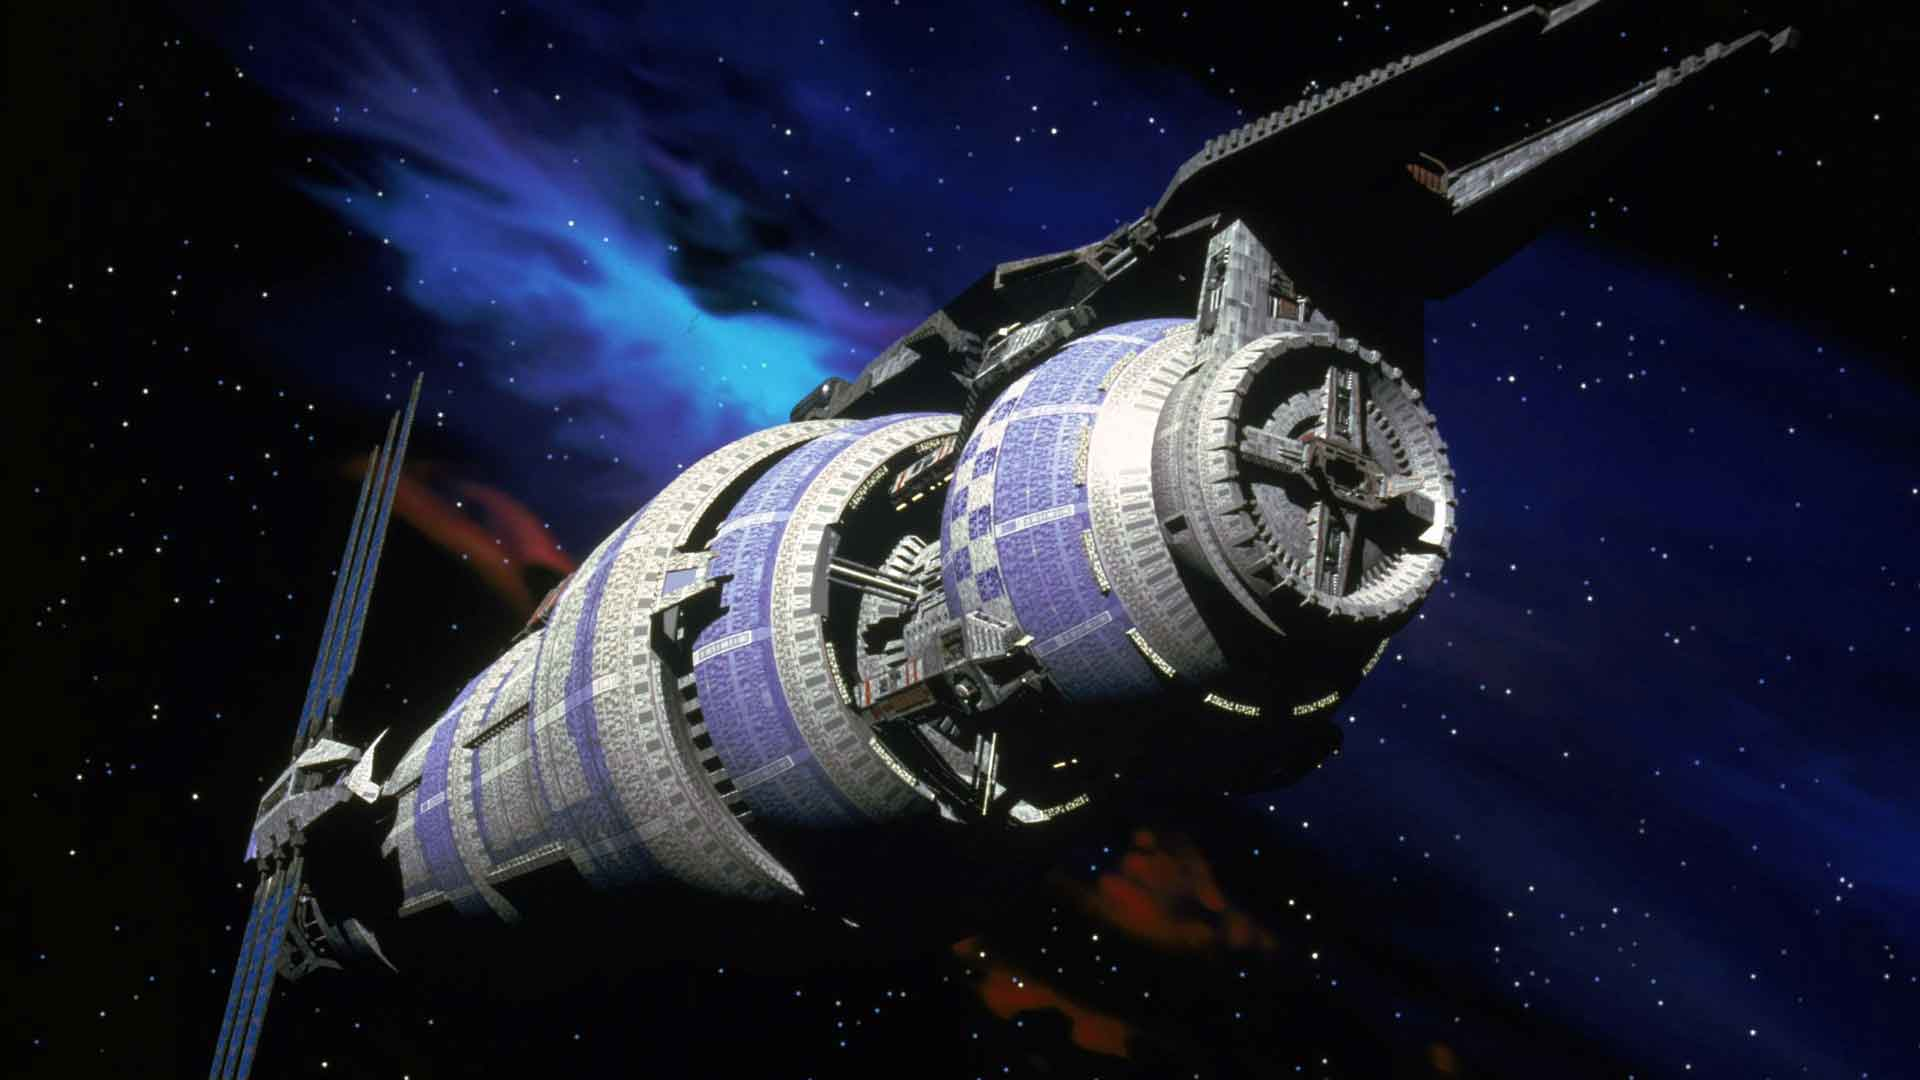 Remastered Babylon 5 streaming on HBO Max